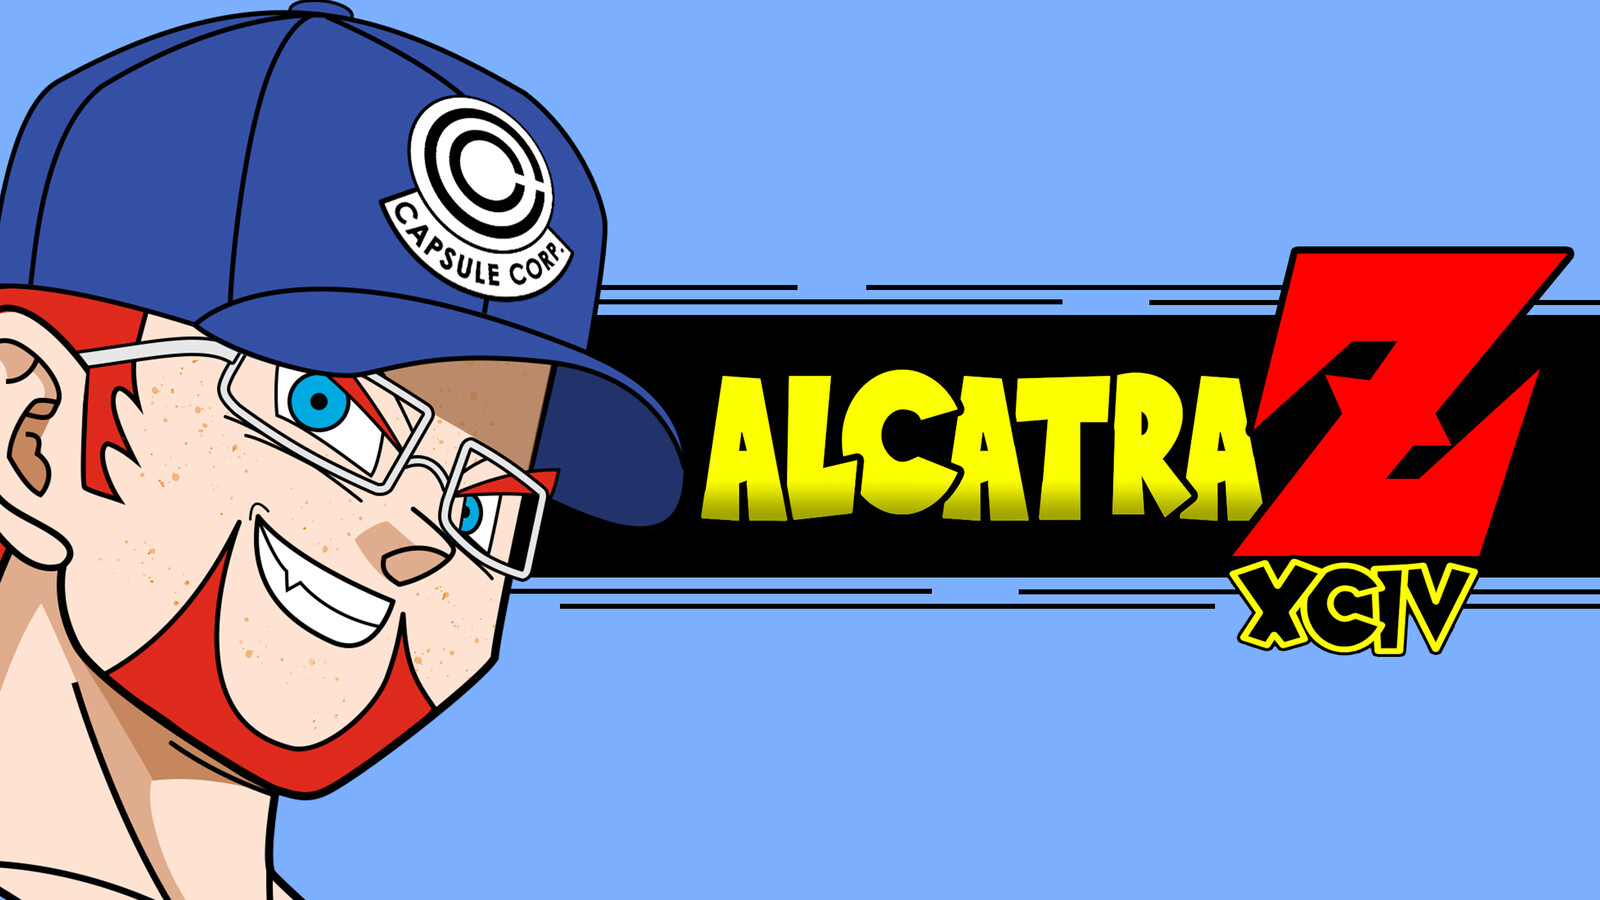 Another YouTube banner for AlcatrazXCIV